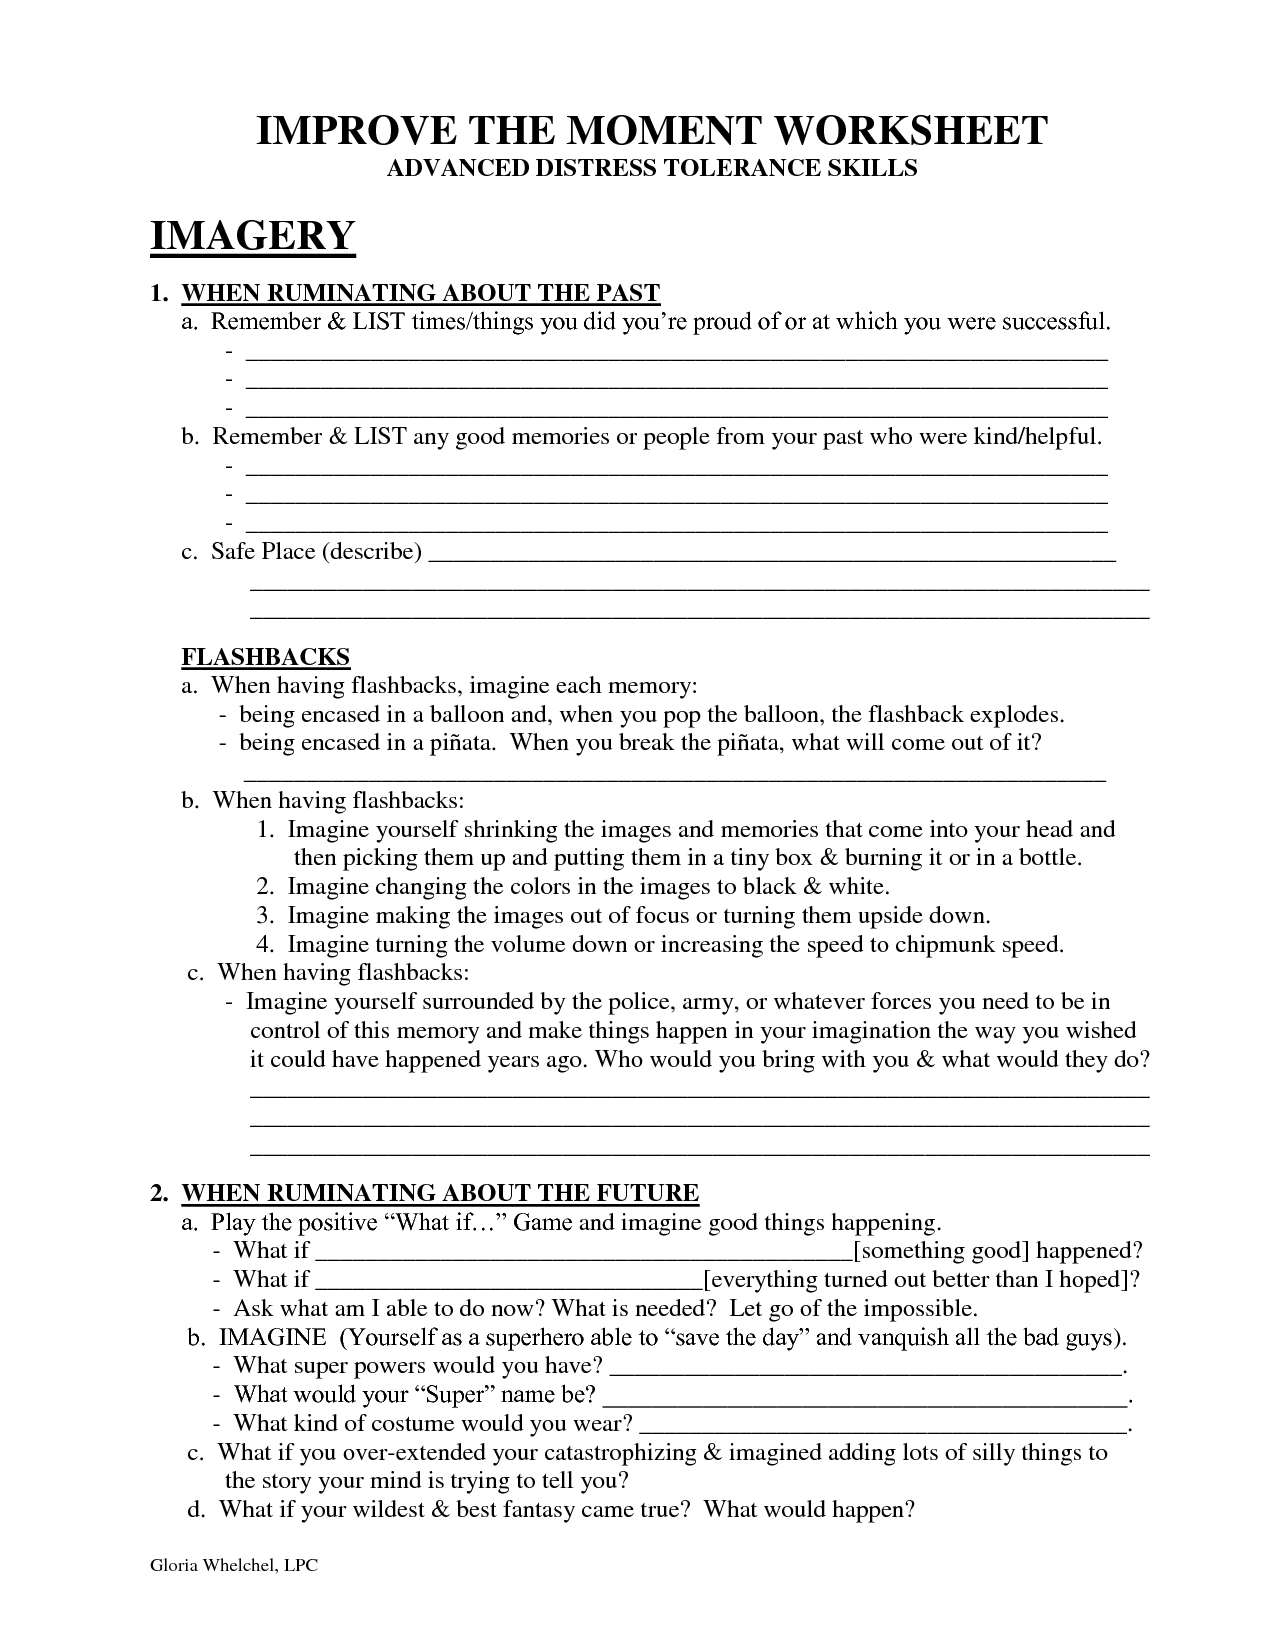 Worksheets Self Harm Worksheets improve the moment worksheet dbt self help psycho pinterest help